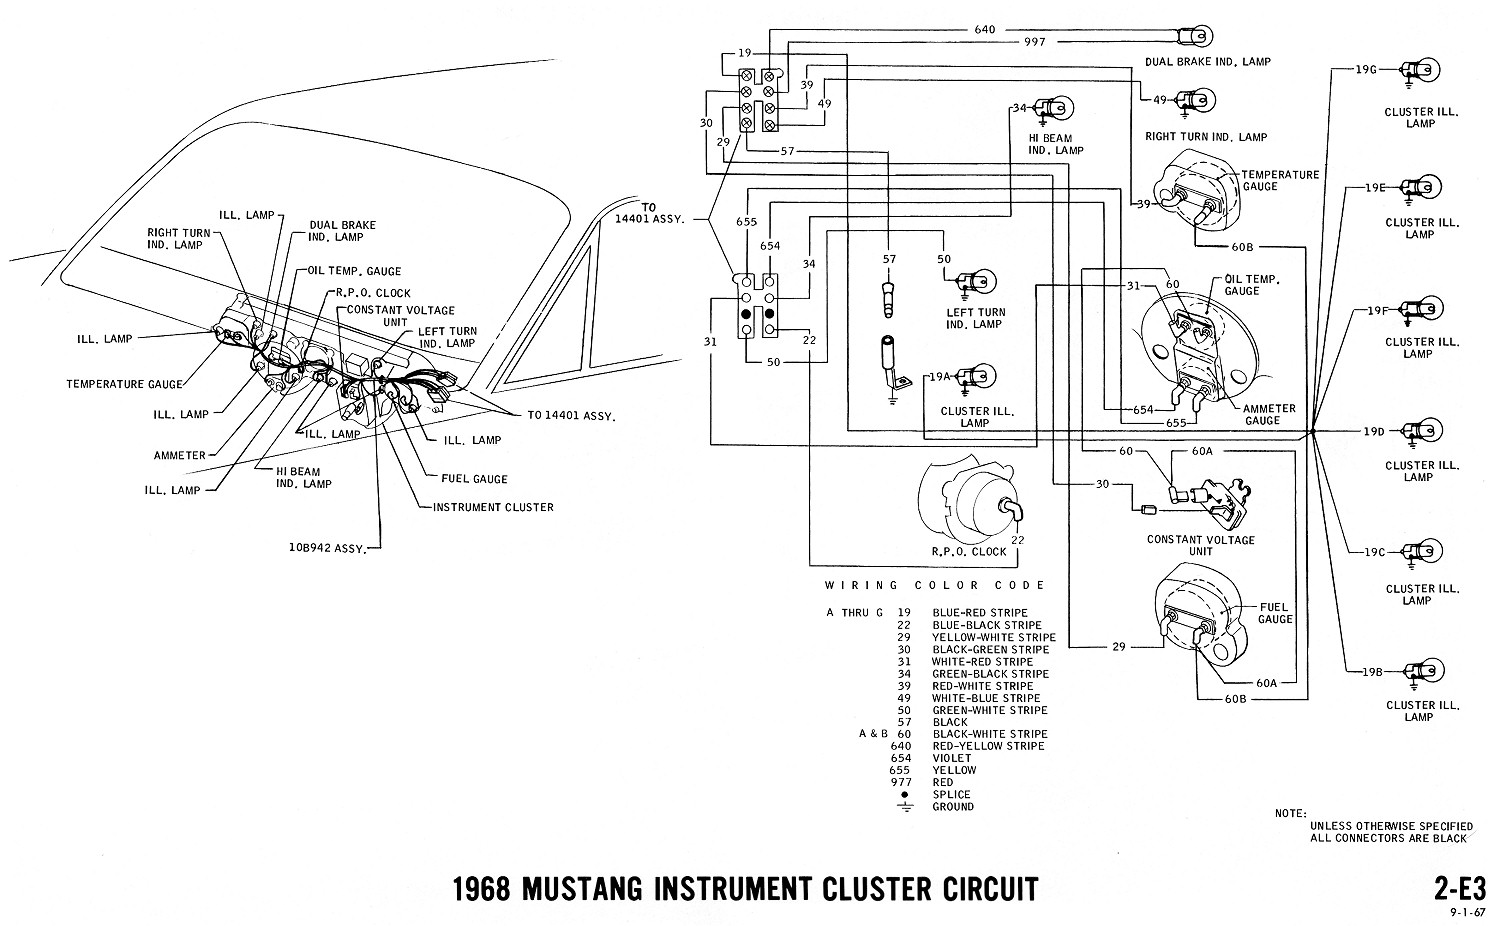 1968 mustang wiring diagram instruments wiring diagram for 1968 ford mustang the wiring diagram 1968 ford mustang wiring diagram at soozxer.org